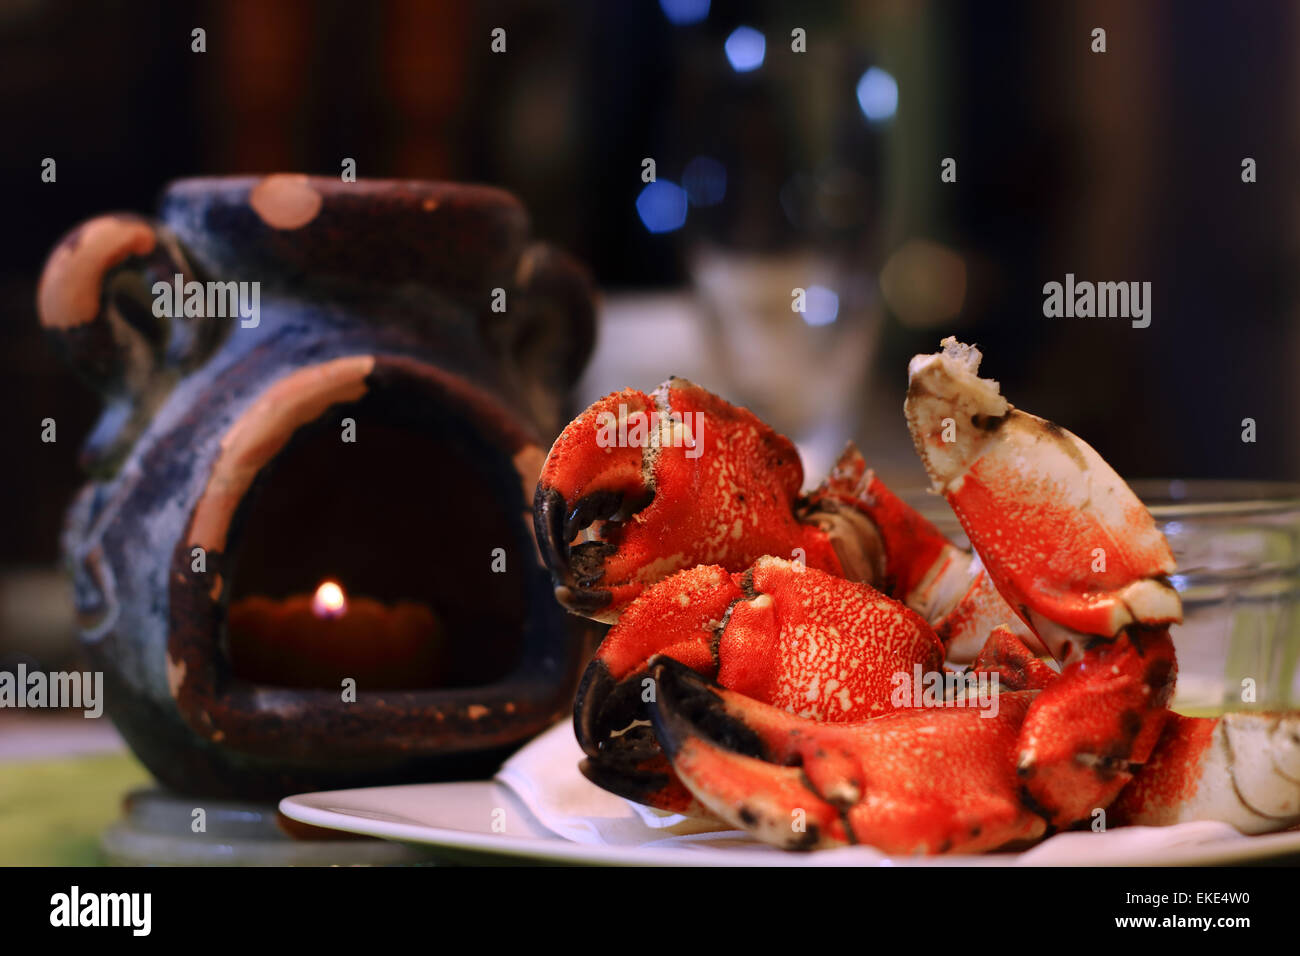 Jonah crab claws on a plate, with candle light and defocsed wine glass in fine dining restaurant. Jonah crabs, aka - Stock Image